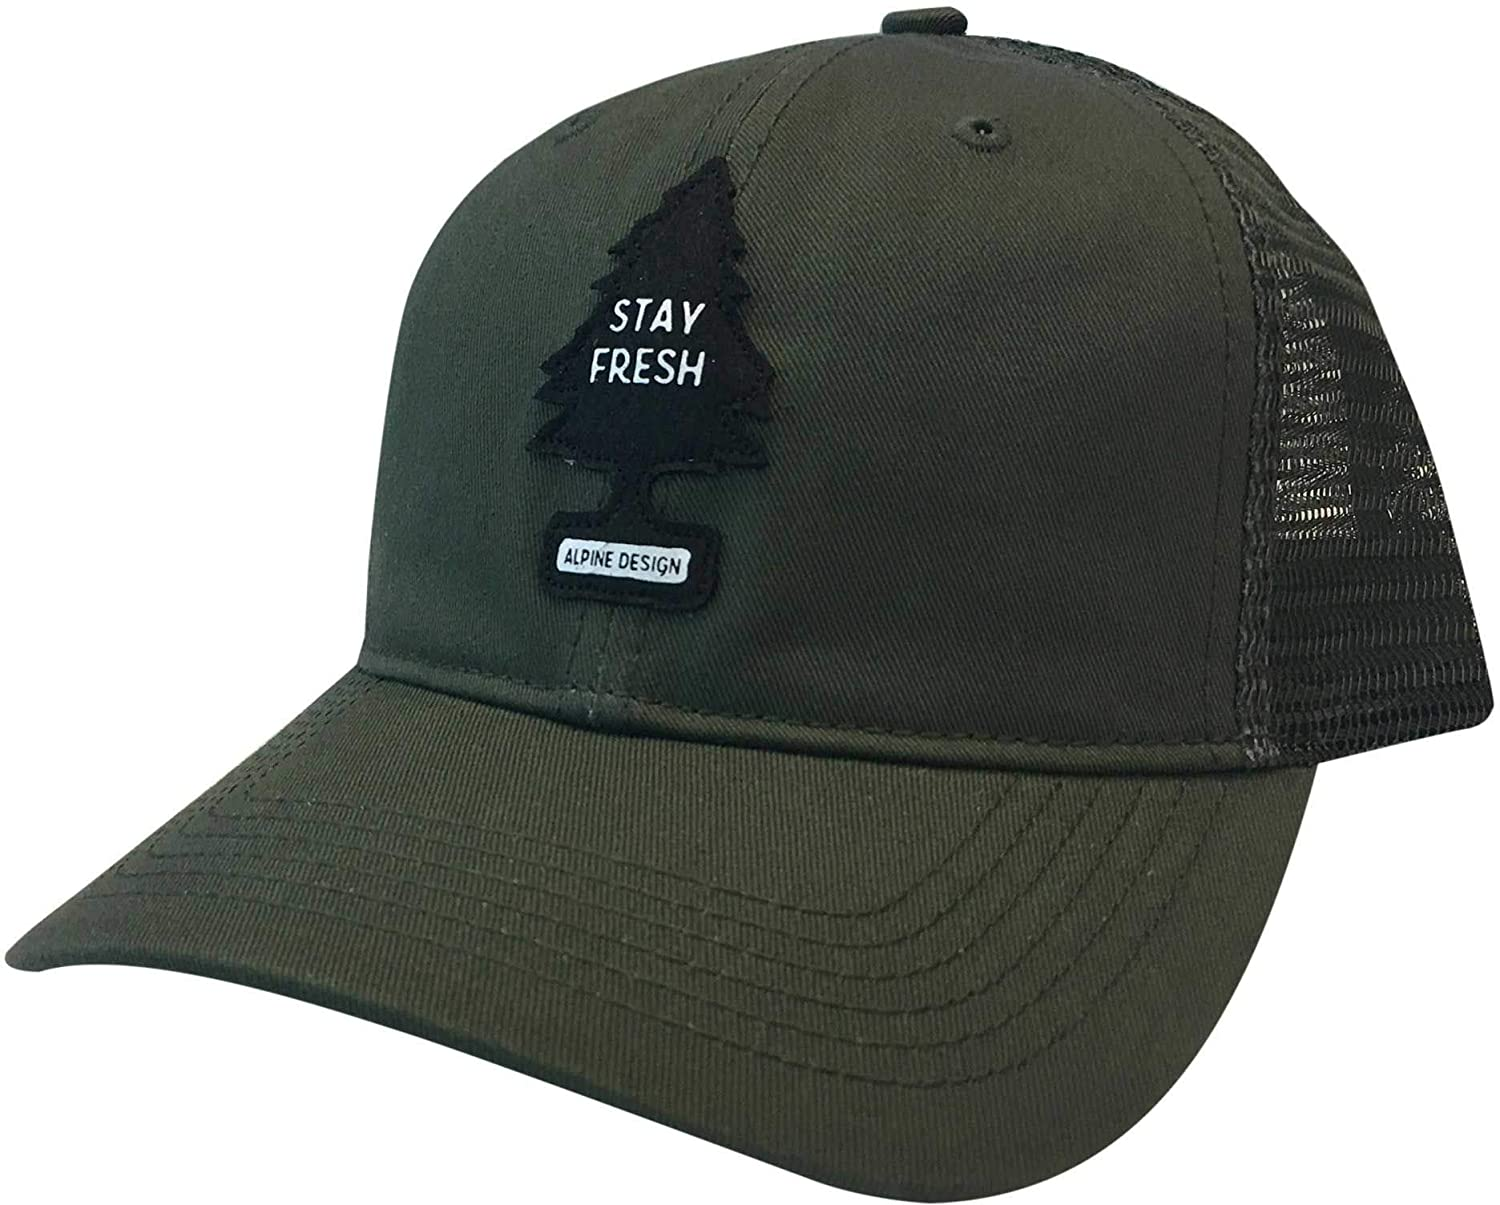 ba81ecc43d2dd Amazon.com   Alpine Design Men s Stay Fresh Patch Trucker Hat  (Charcoal OneSize)   Sports   Outdoors